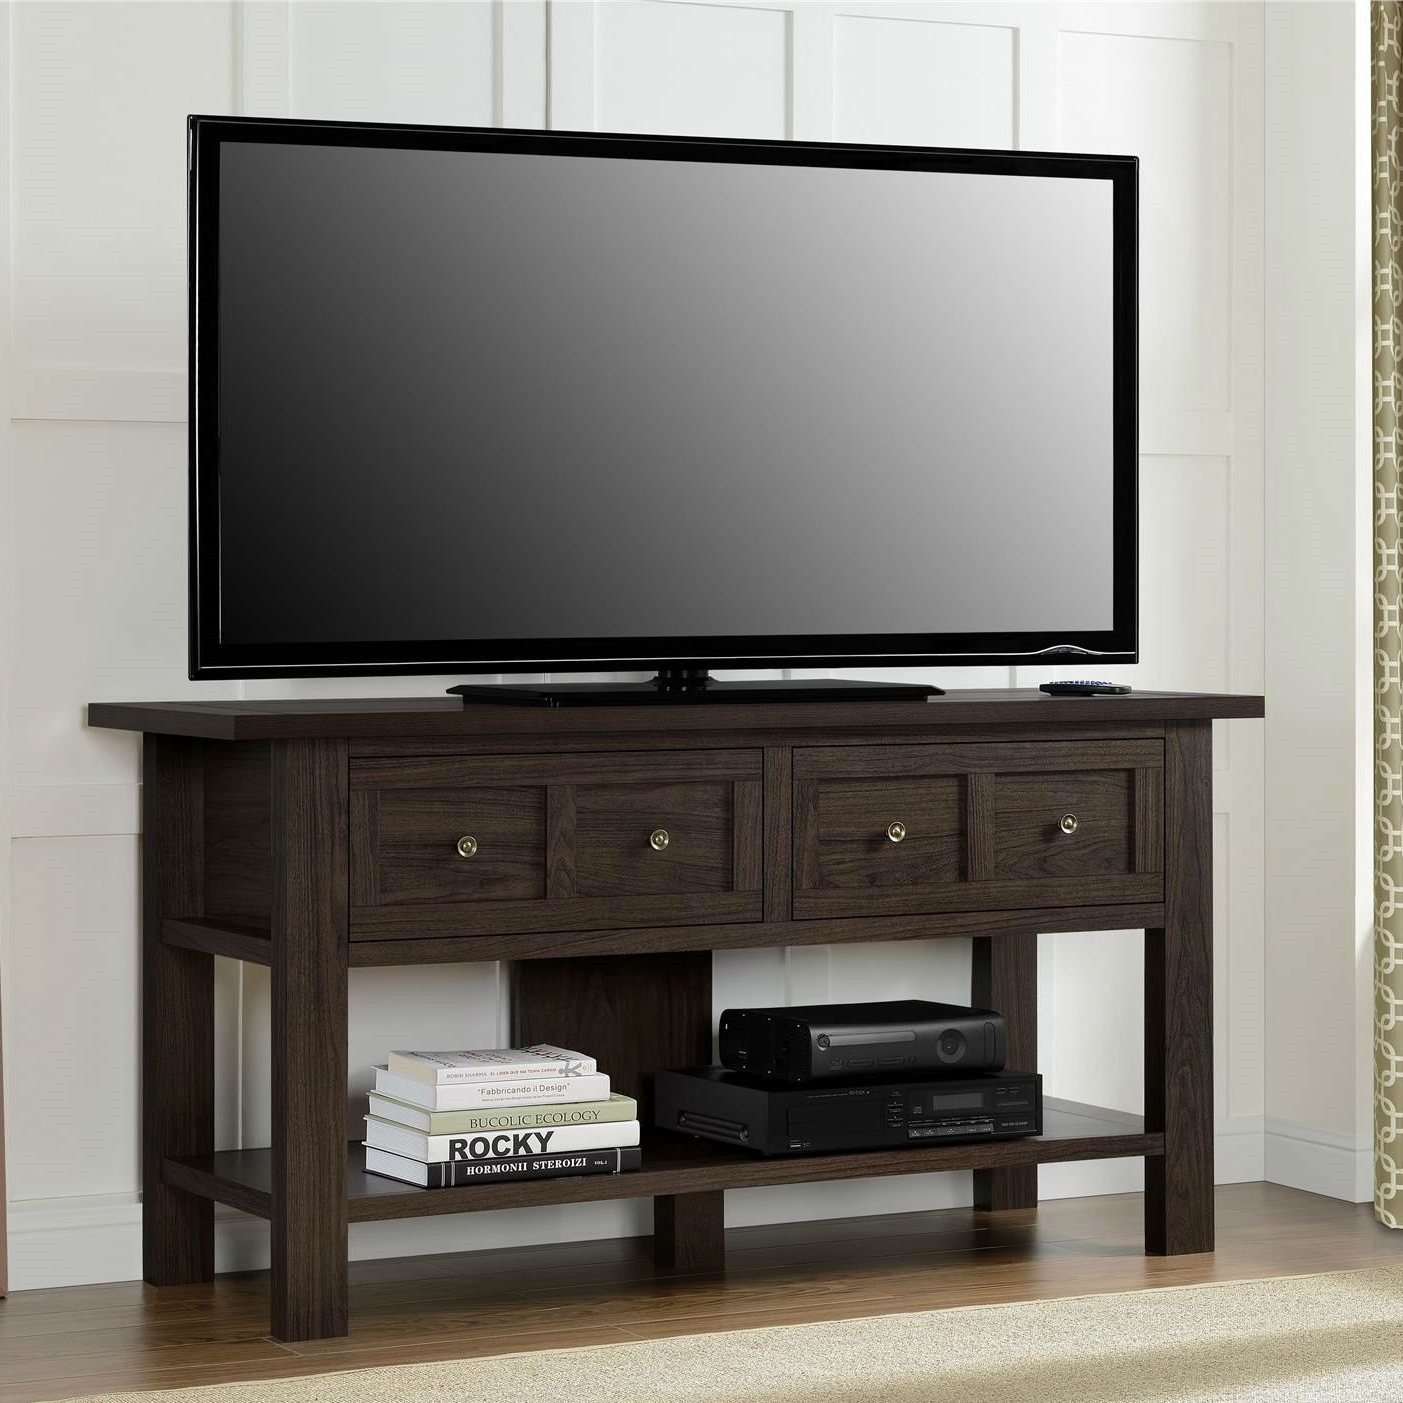 Add A Warm Touch To Any Room With This Classic 55 Inch Tv Stand With Regard To 2017 Classic Tv Stands (View 1 of 20)